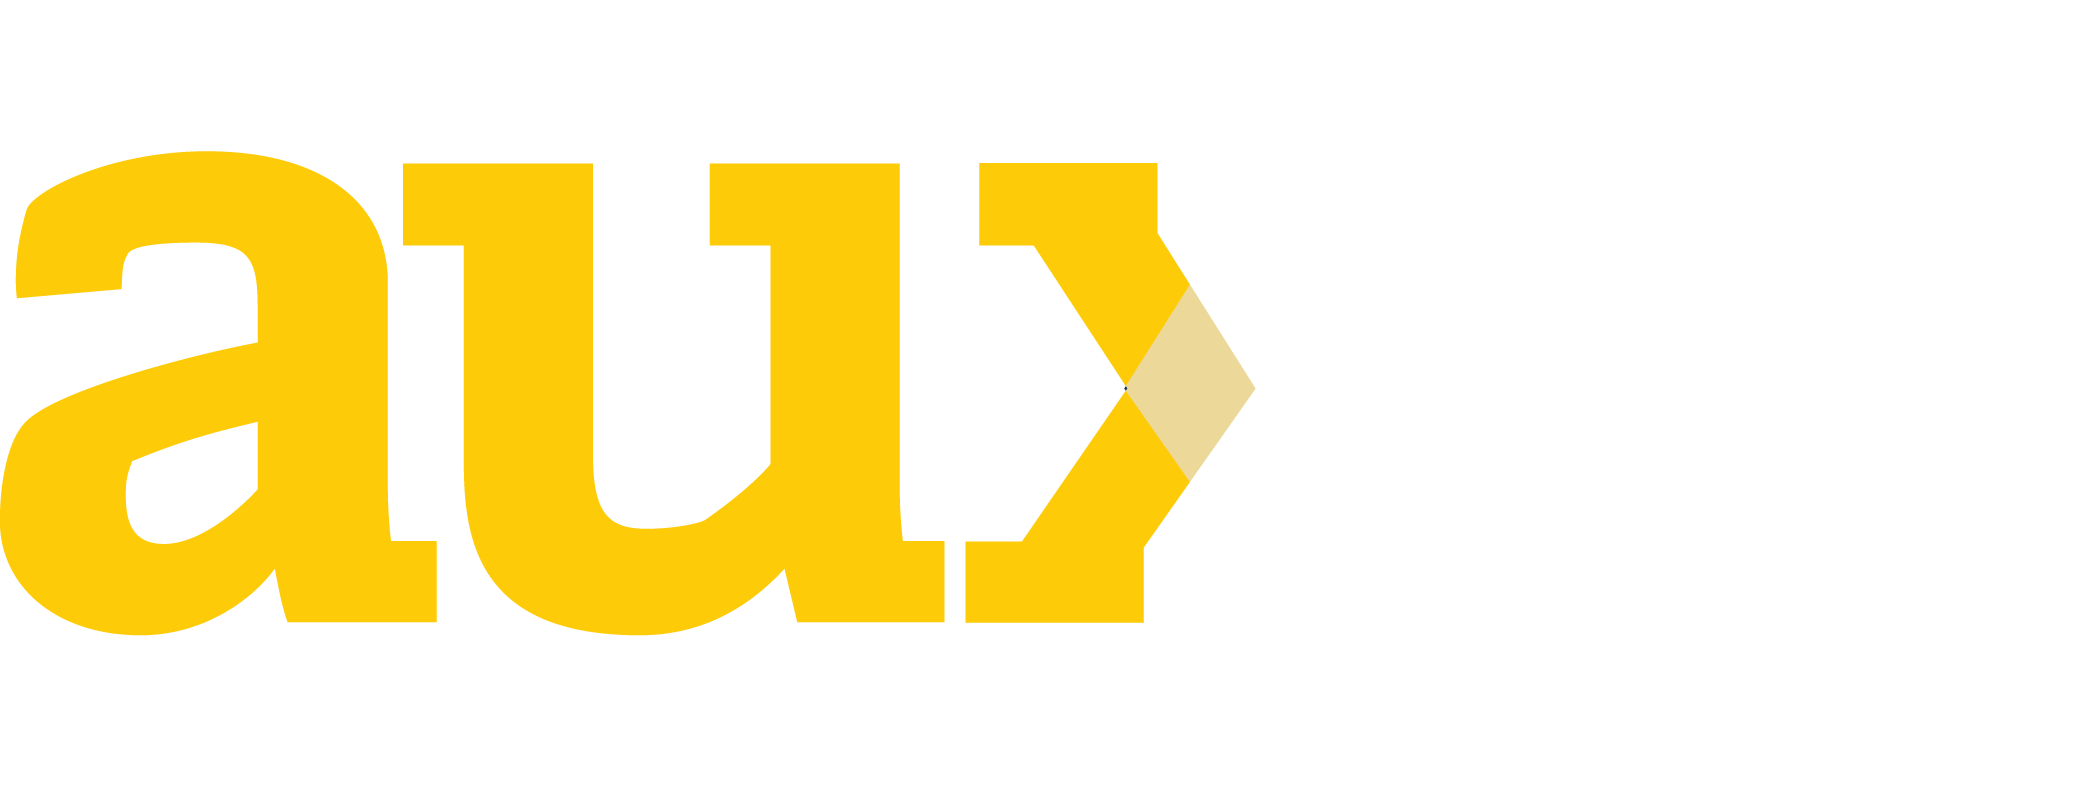 auxis consulting & outsourcing